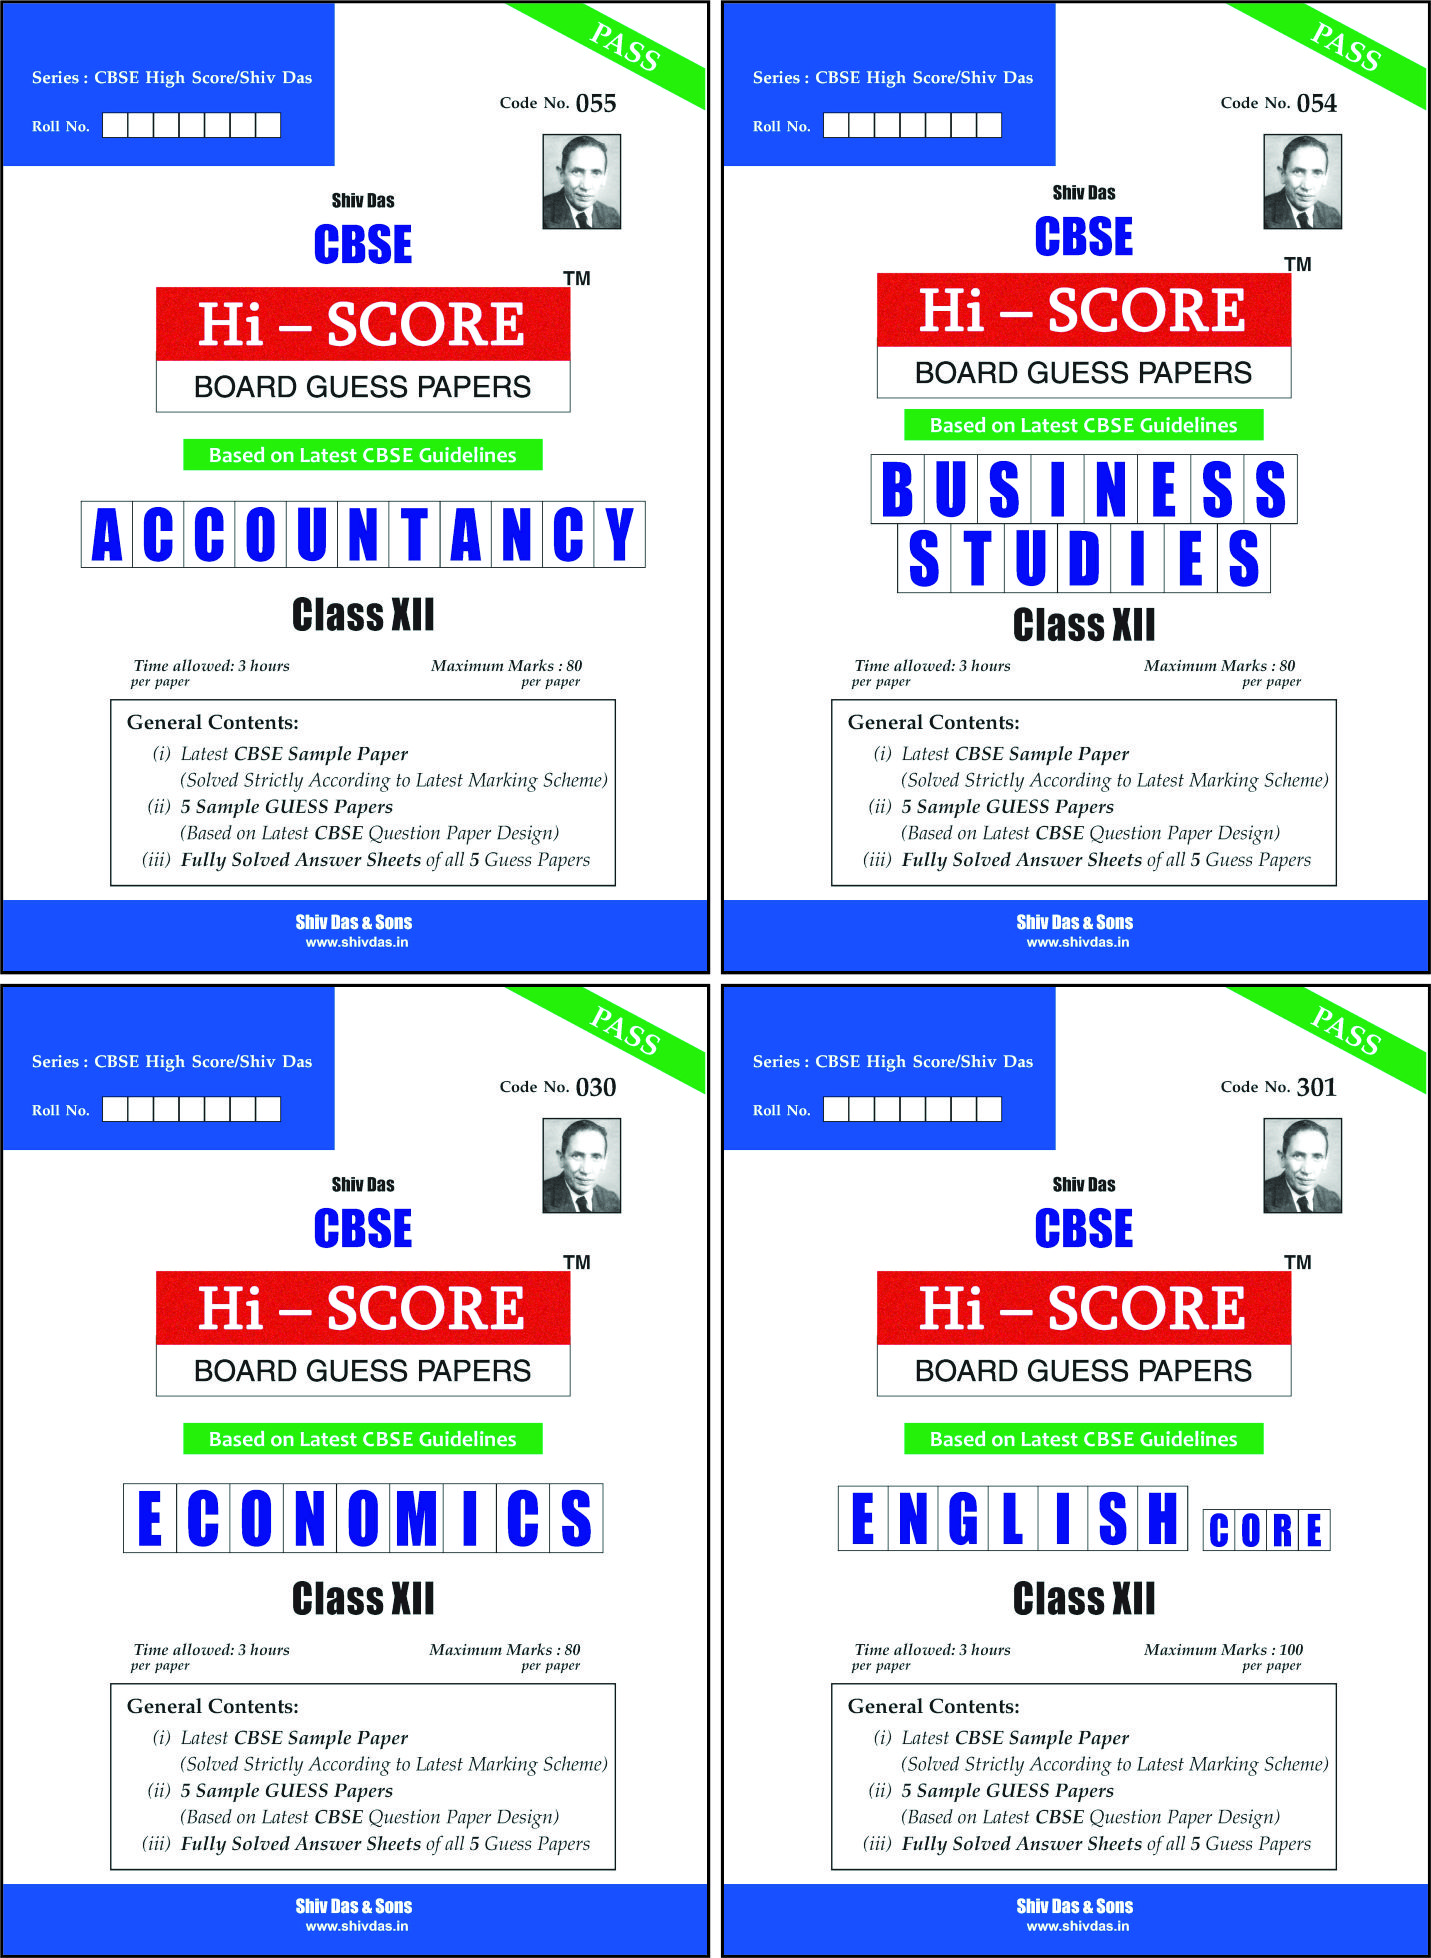 CBSE Hi Score Board Guess Papers Pack of 4 for Class 12 Accountancy Economics Business Studies English Core